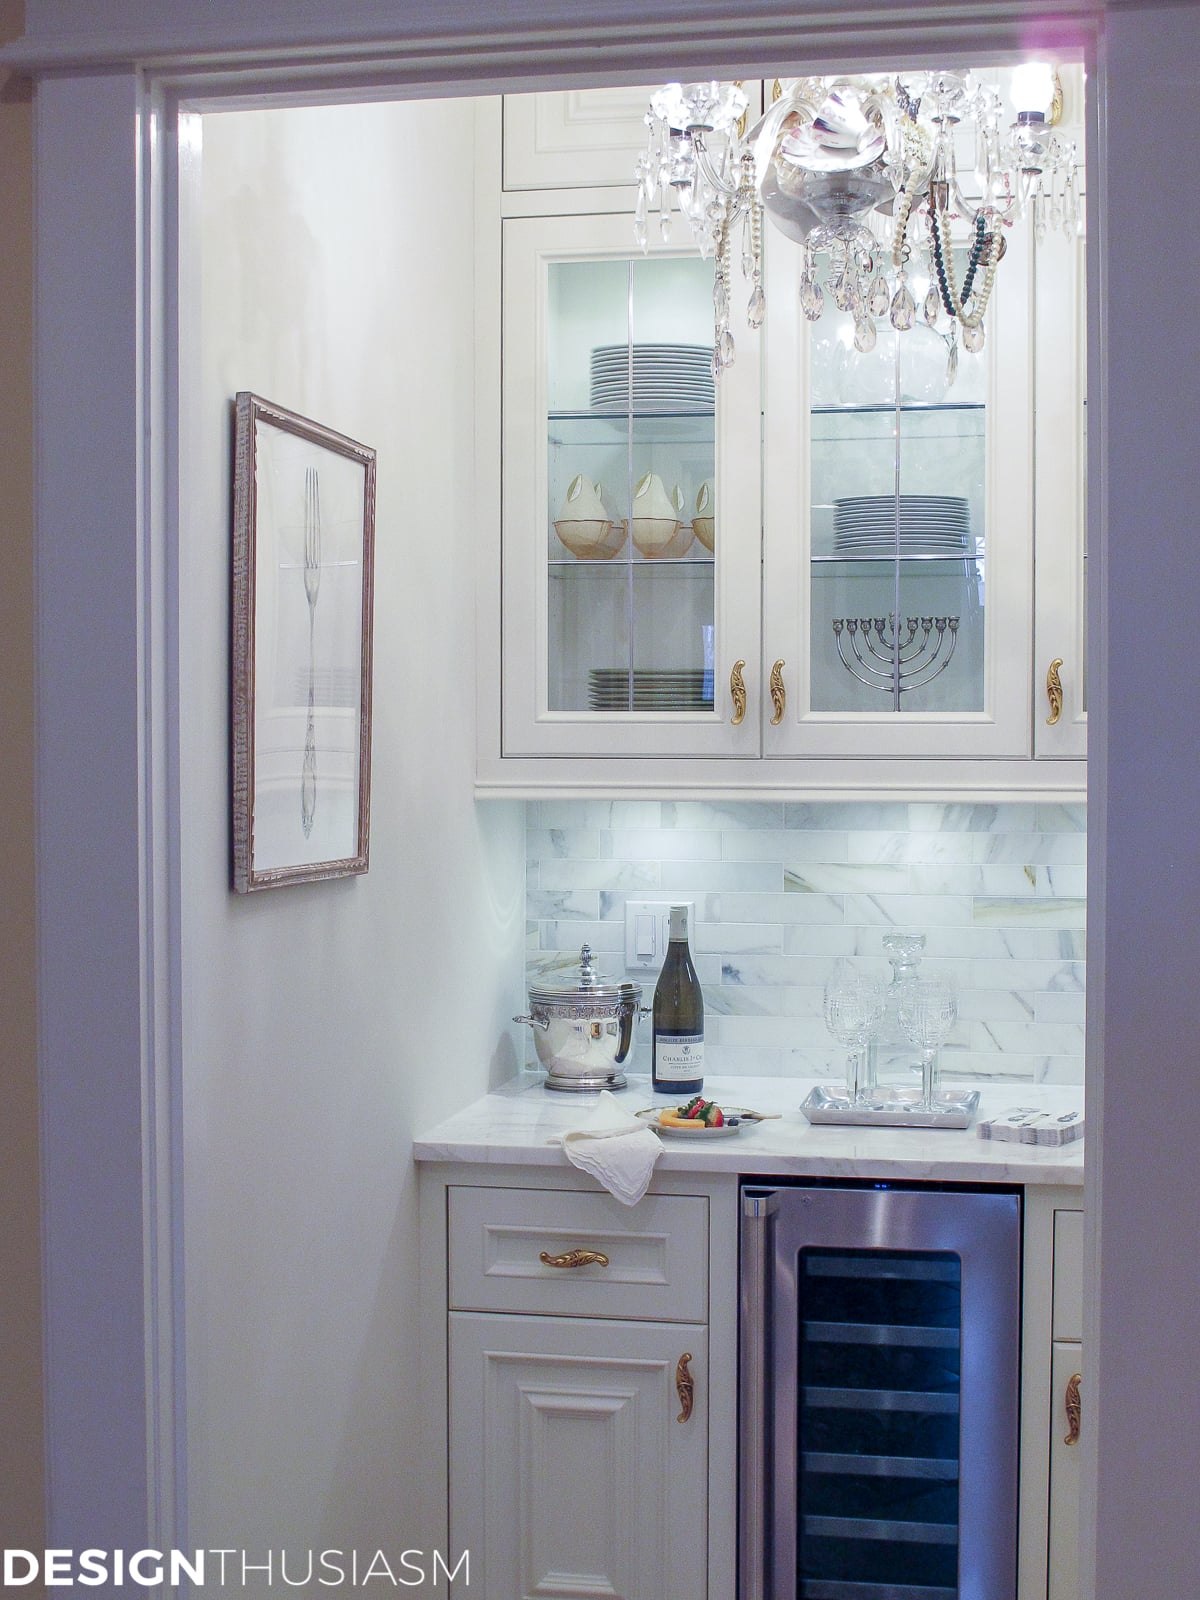 10 Gorgeous Elements to Add French Style to the Butler's Pantry - Designthusiasm.com